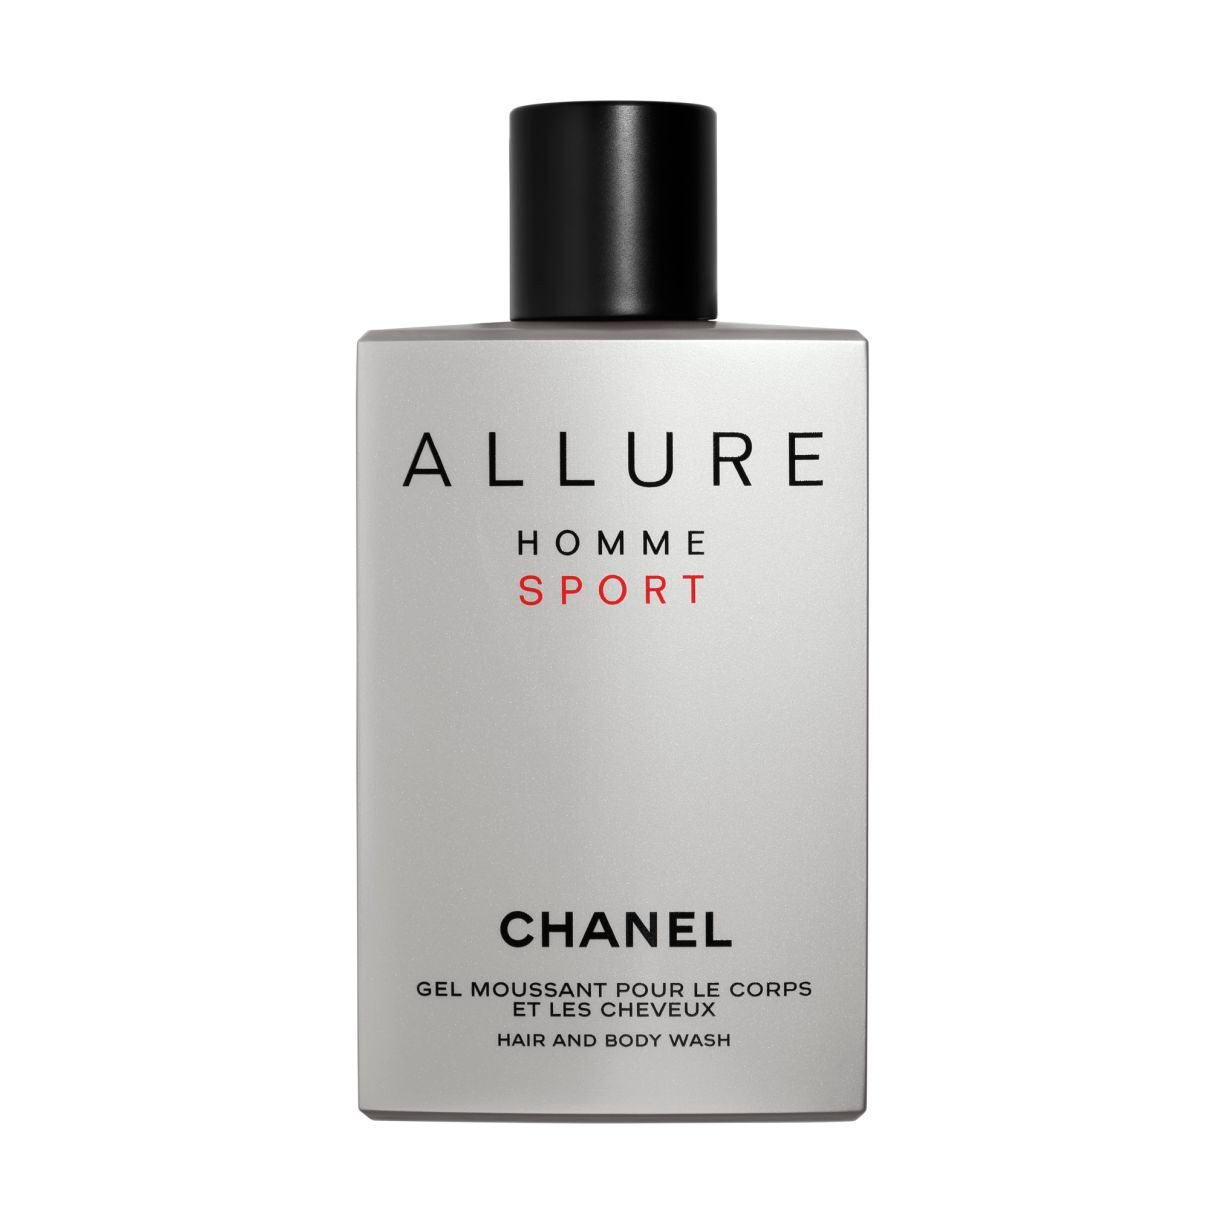 ALLURE HOMME SPORT SHOWER GEL - เจลอาบน้ำ 200ml